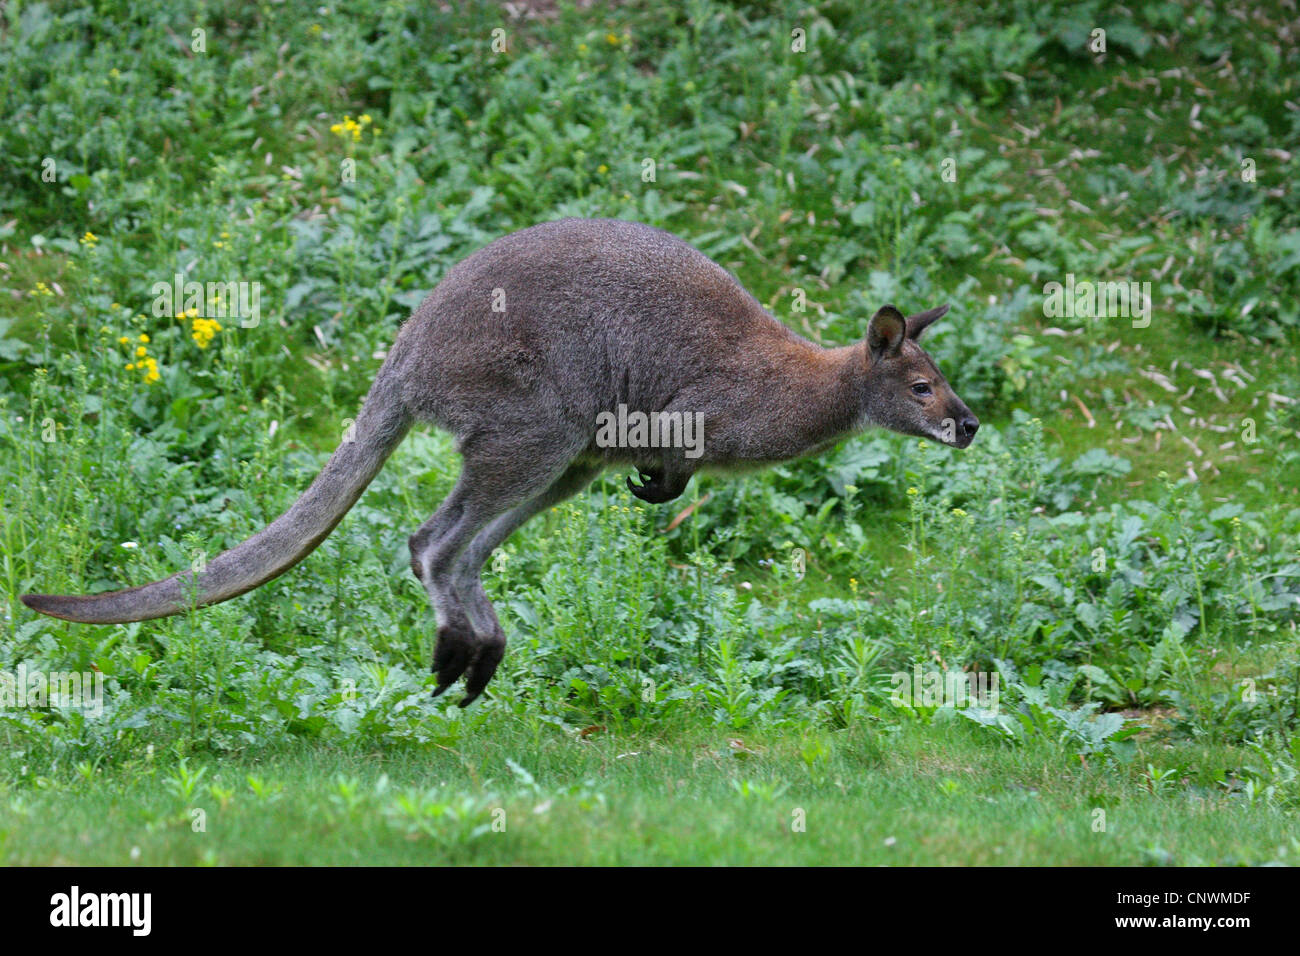 red-necked wallaby, Bennett's Wallaby (Macropus rufogriseus, Wallabia rufogrisea), jumping, Australia Stock Photo